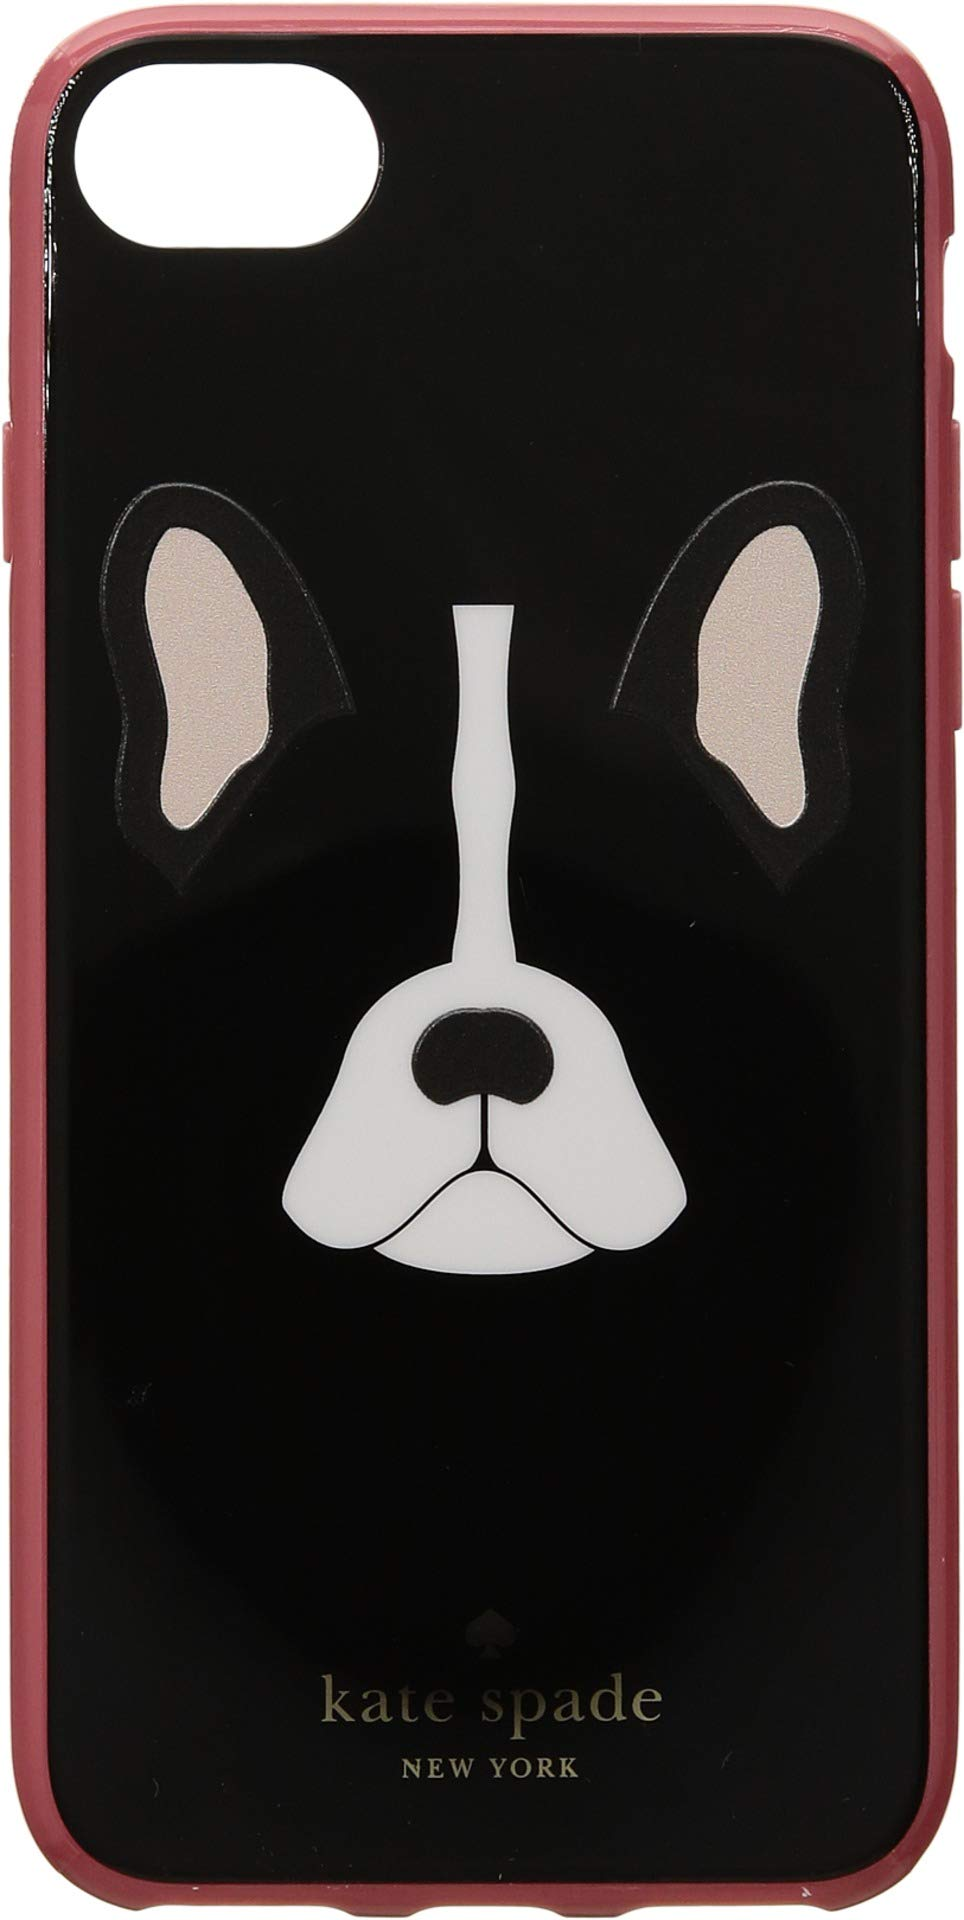 Kate Spade New York Women's Antoine Phone Case for iPhone 8 Black Multi One Size